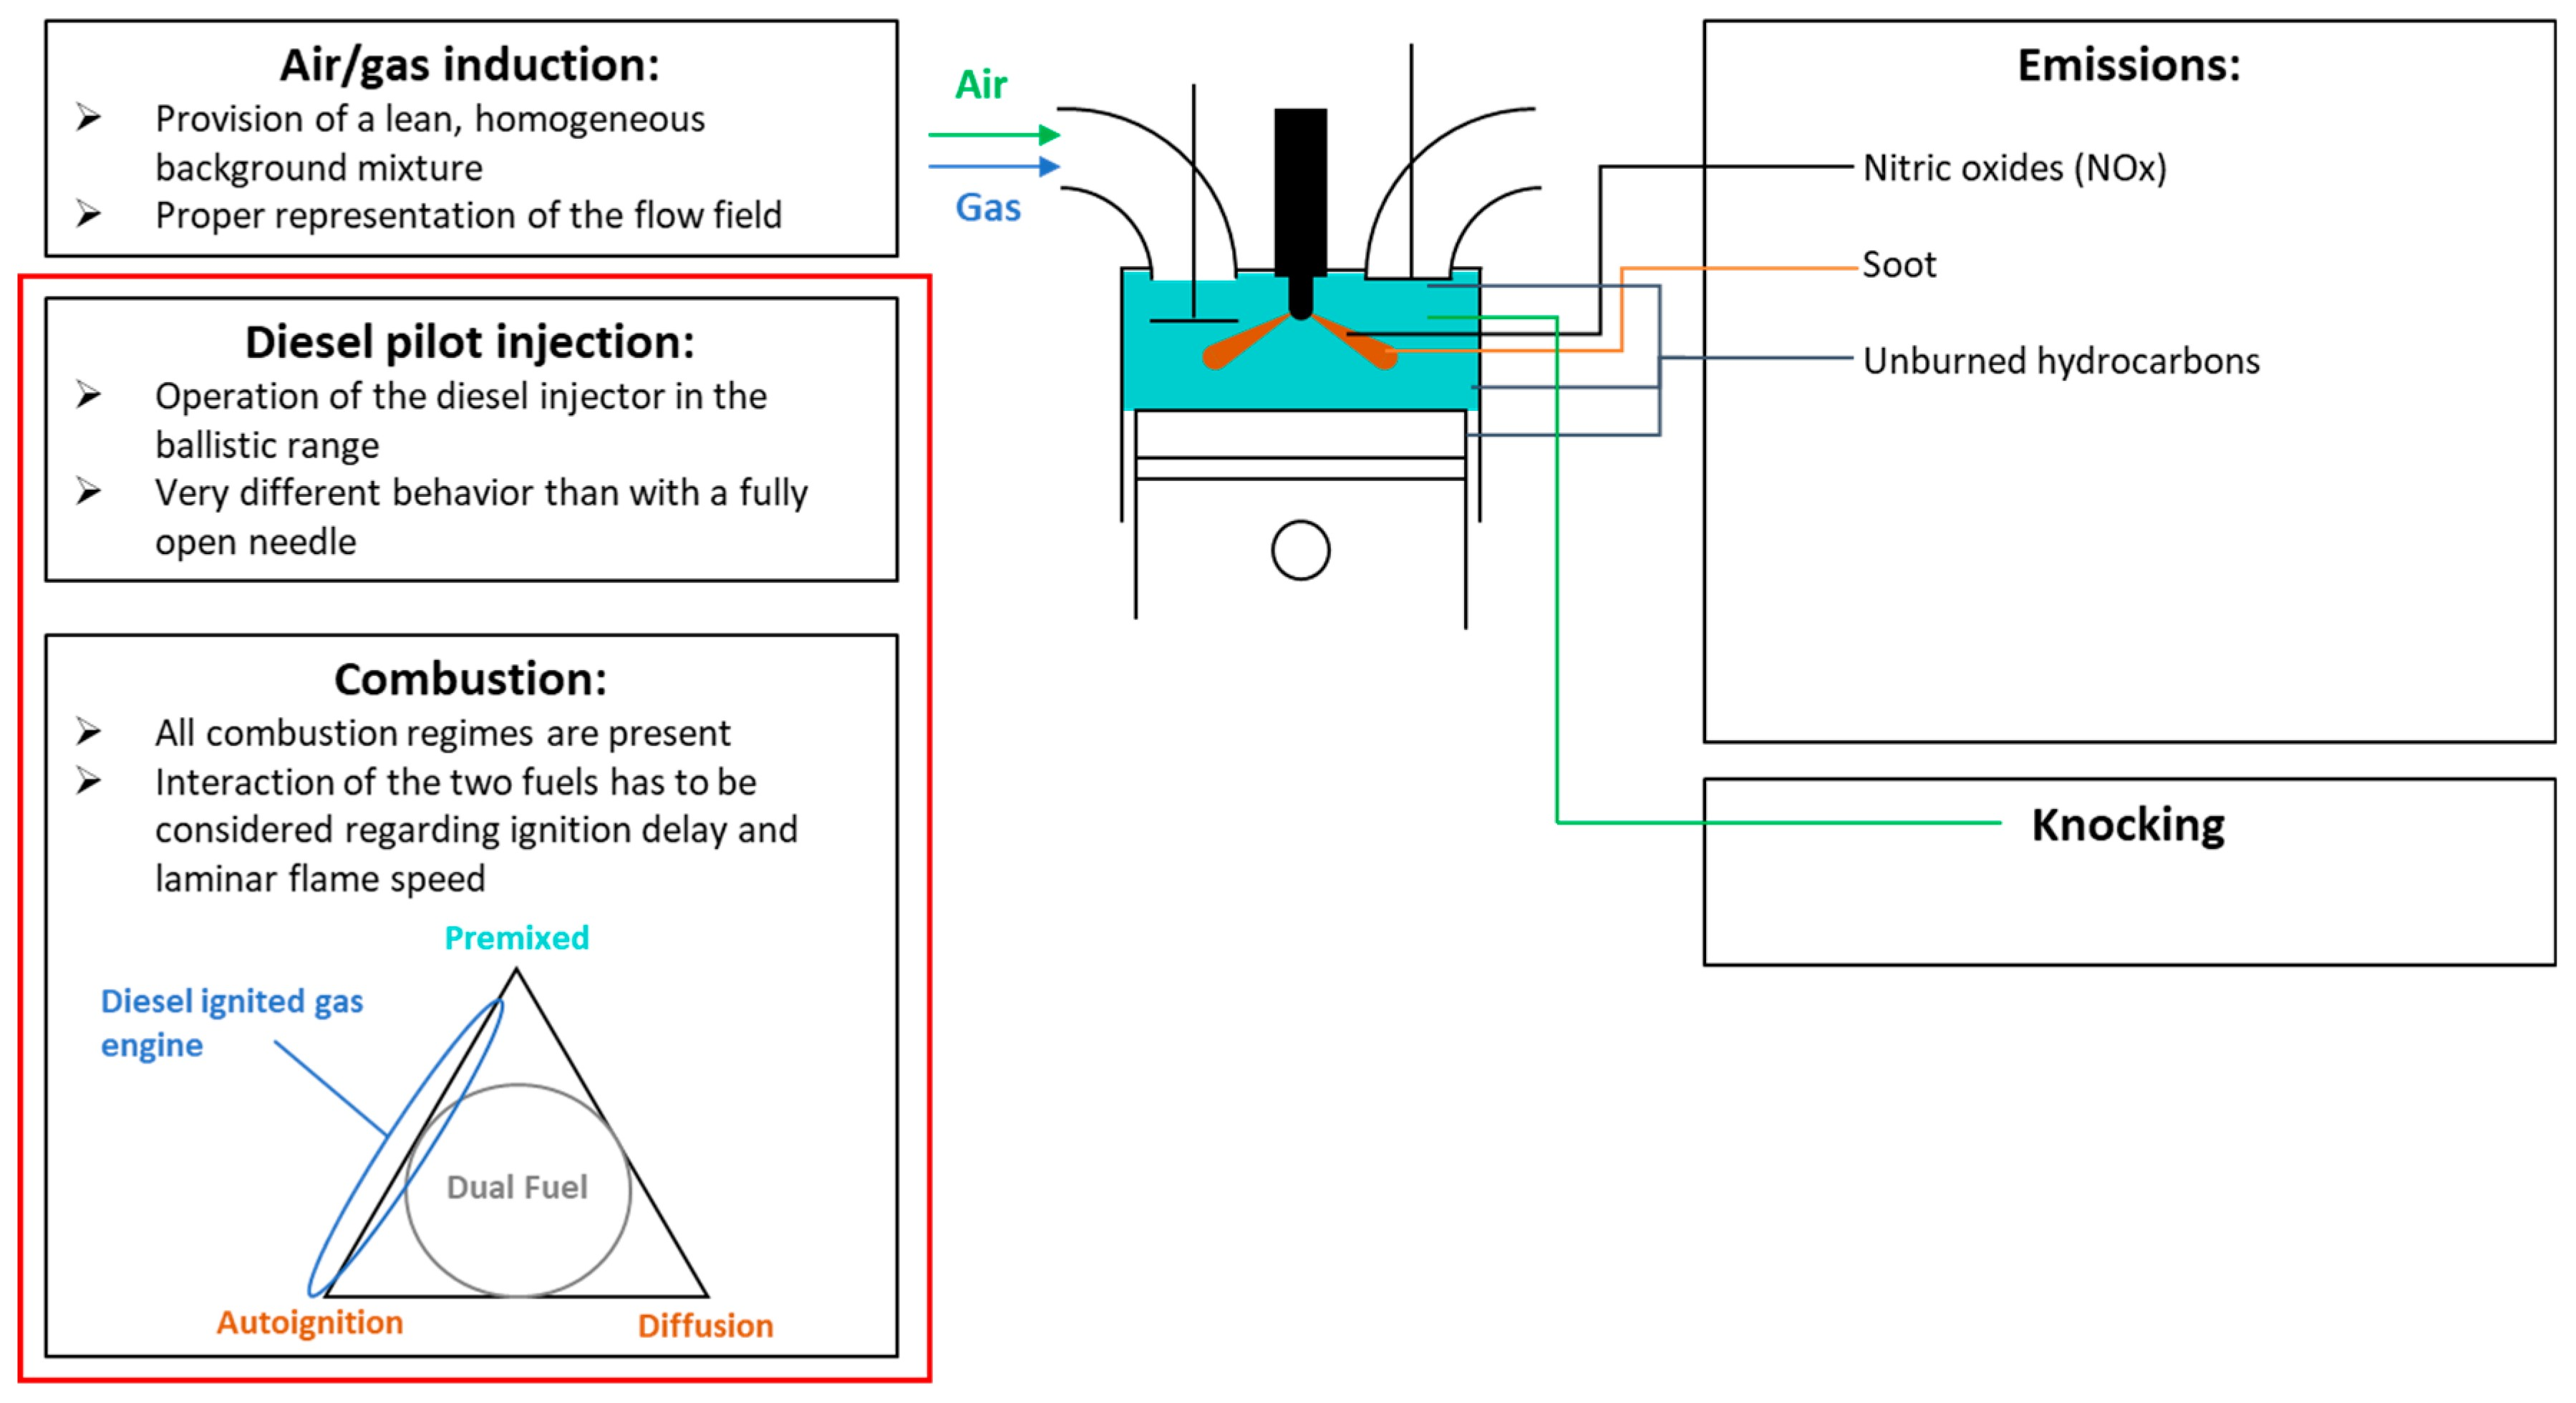 Simple Diesel Engine Diagram Energies Free Full Text Of Simple Diesel Engine Diagram 97 ford F 350 7 3 Diesel Engine Diagram